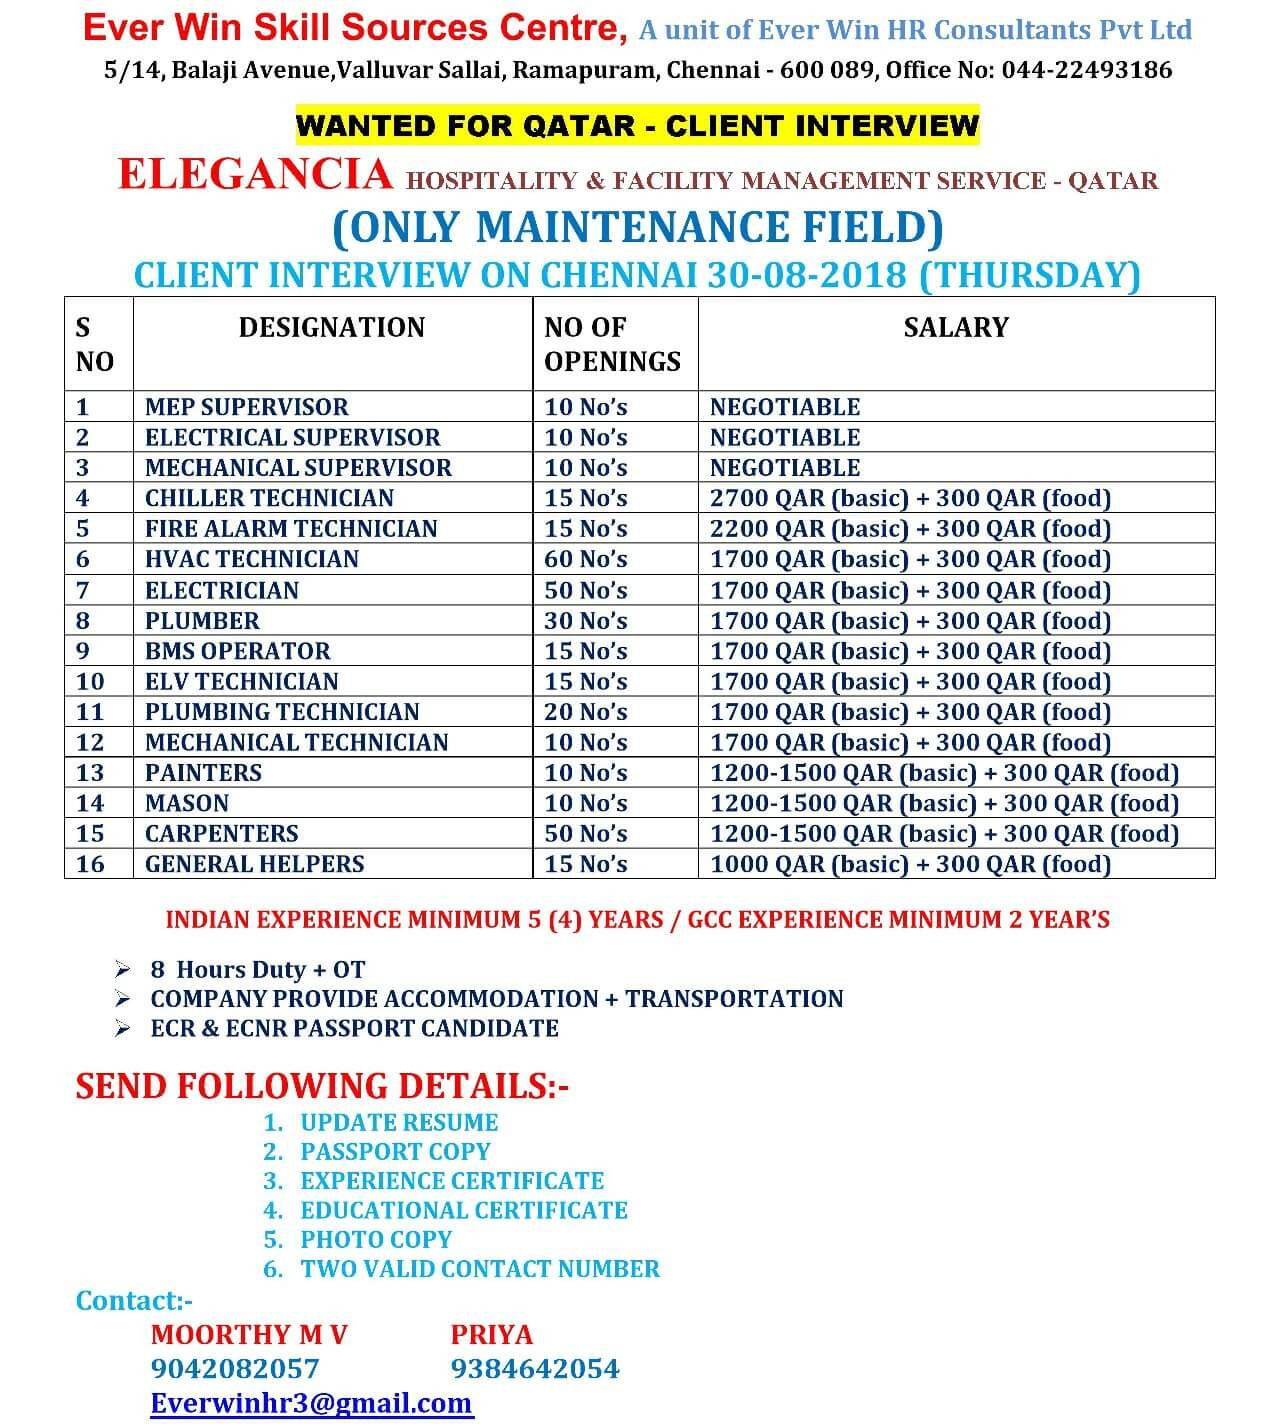 WANTED FOR QATAR - ELEGANCIA Hospitality & Facility Management Services